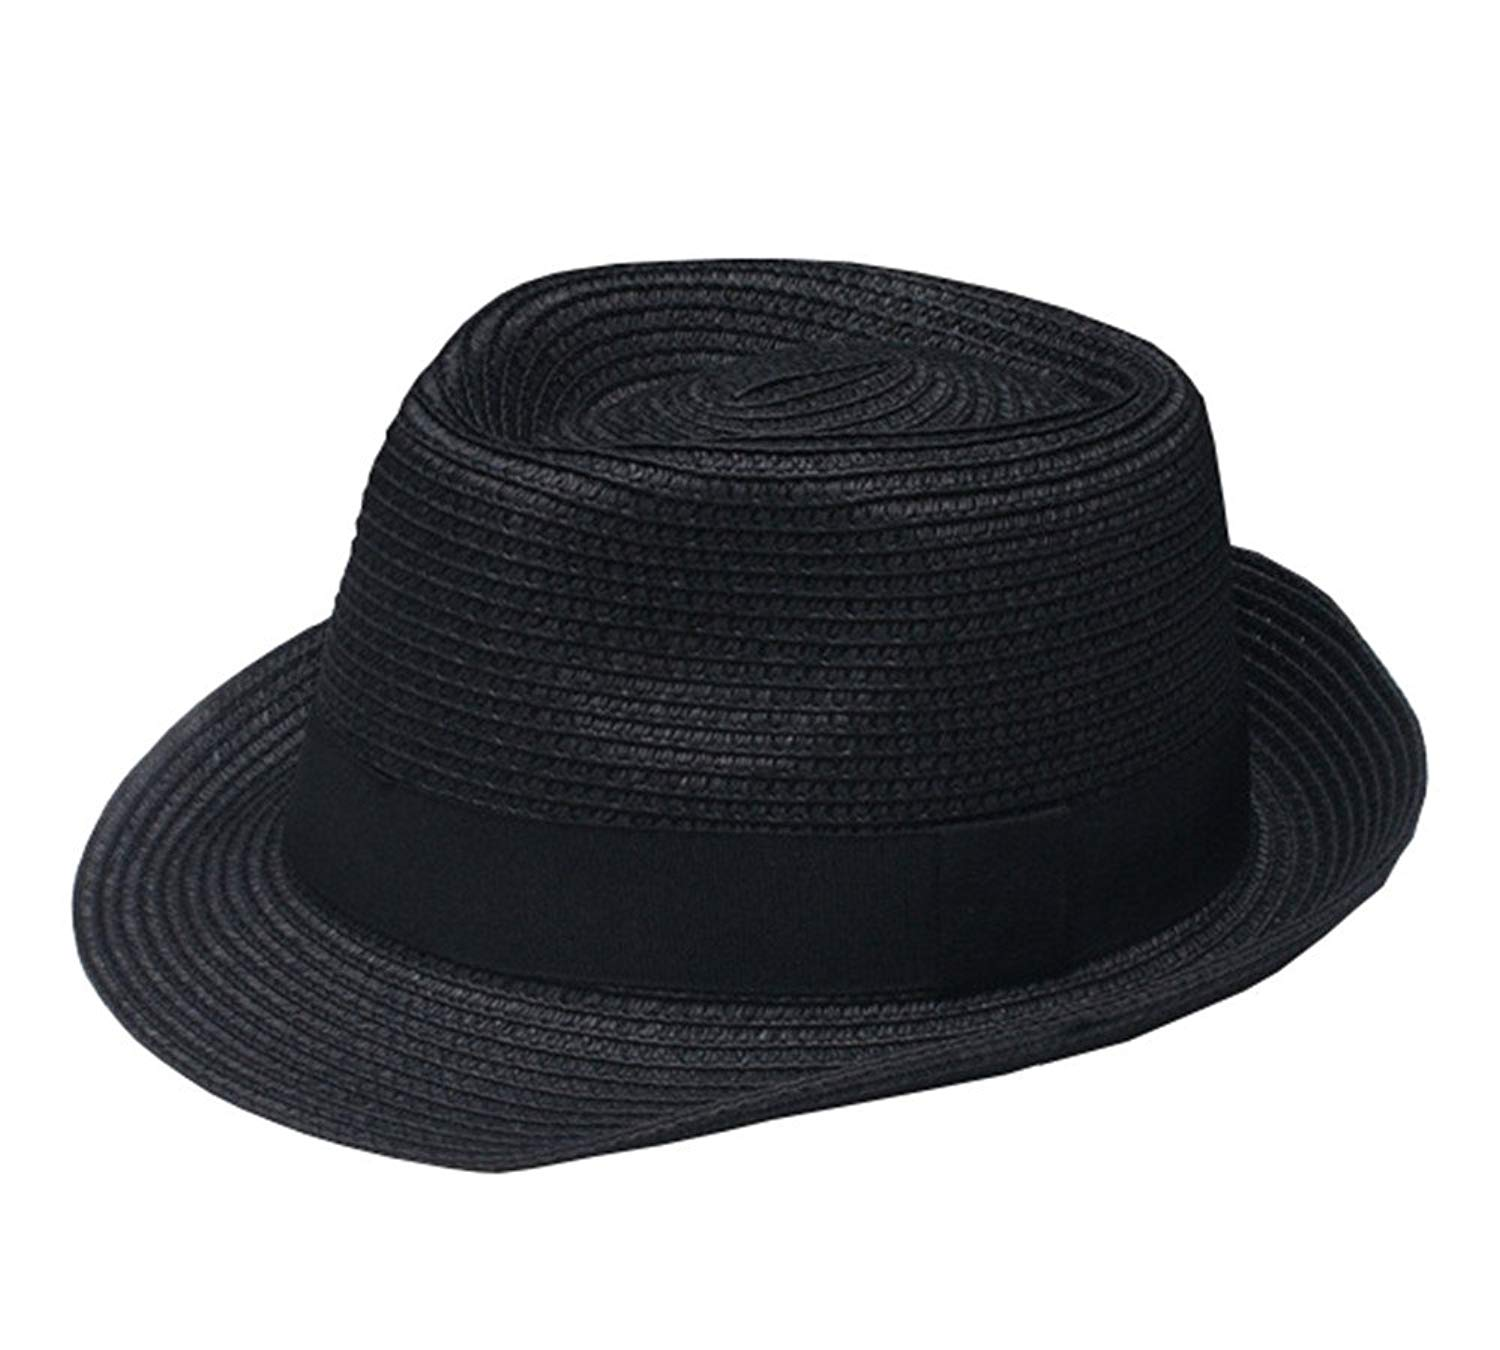 755bc1a2a63 Get Quotations · missfiona Short Brim Summer Beach Fedora Panama Straw Hat  for Men and Kids